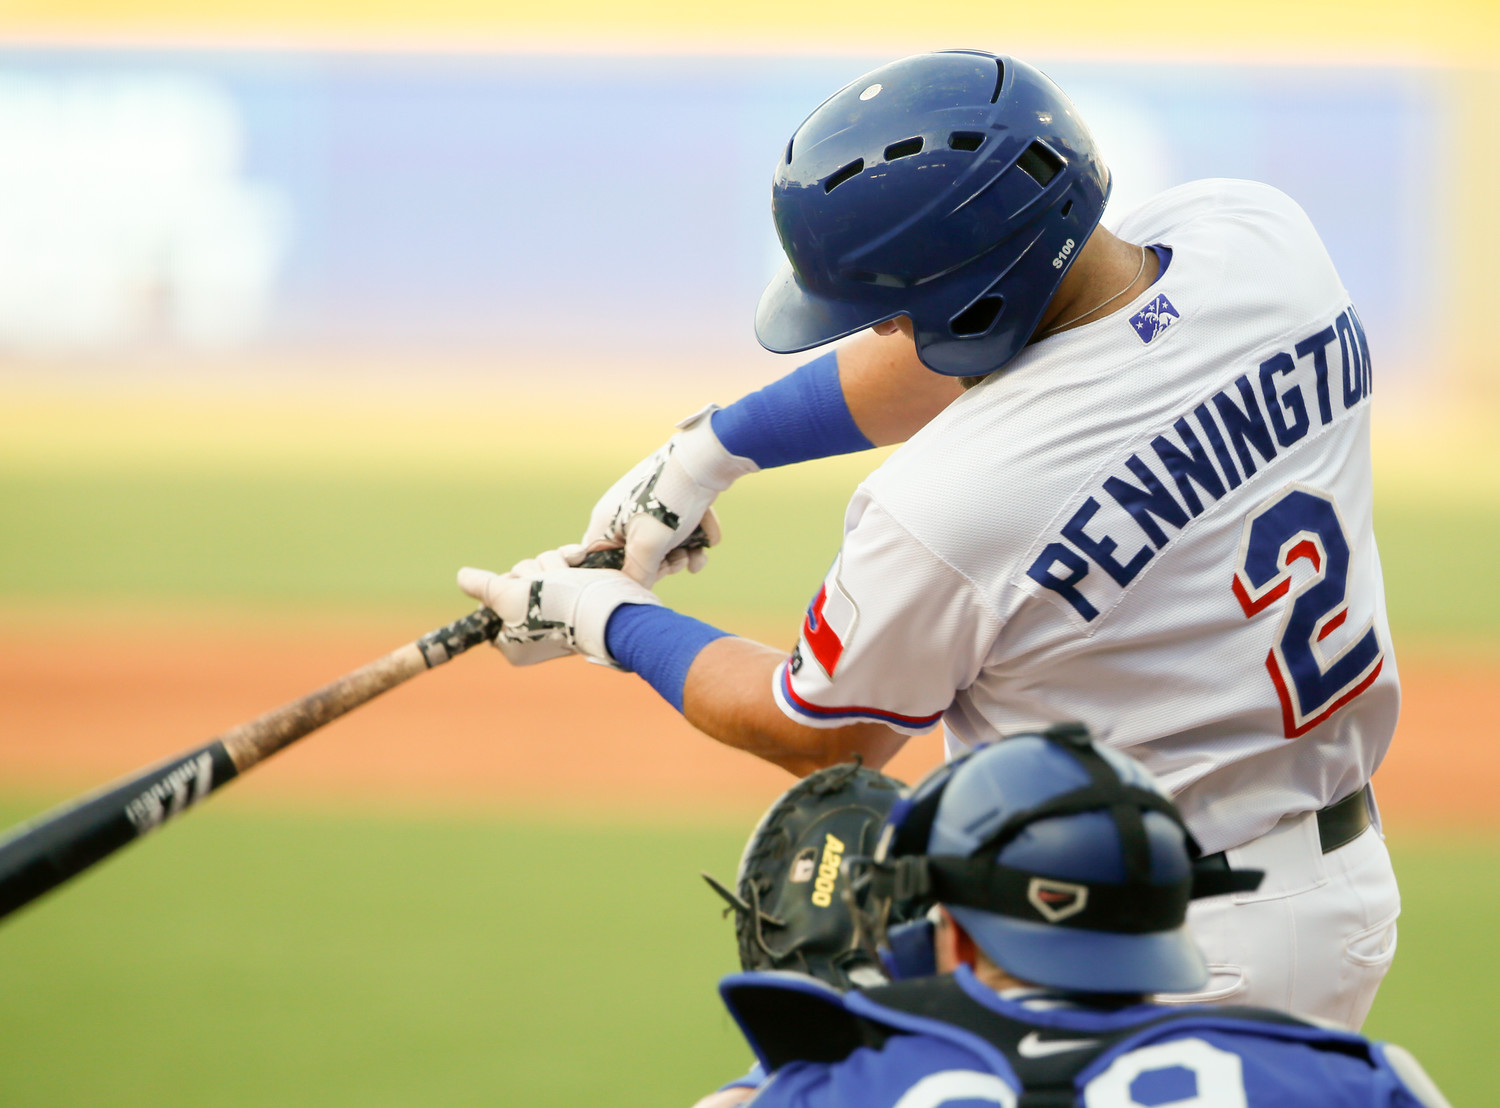 Cliff Pennington started the year with the Cincinnati Reds, appearing in 16 games. He's played at least 60 major league games in every season before this year since he was first called up late in 2008.